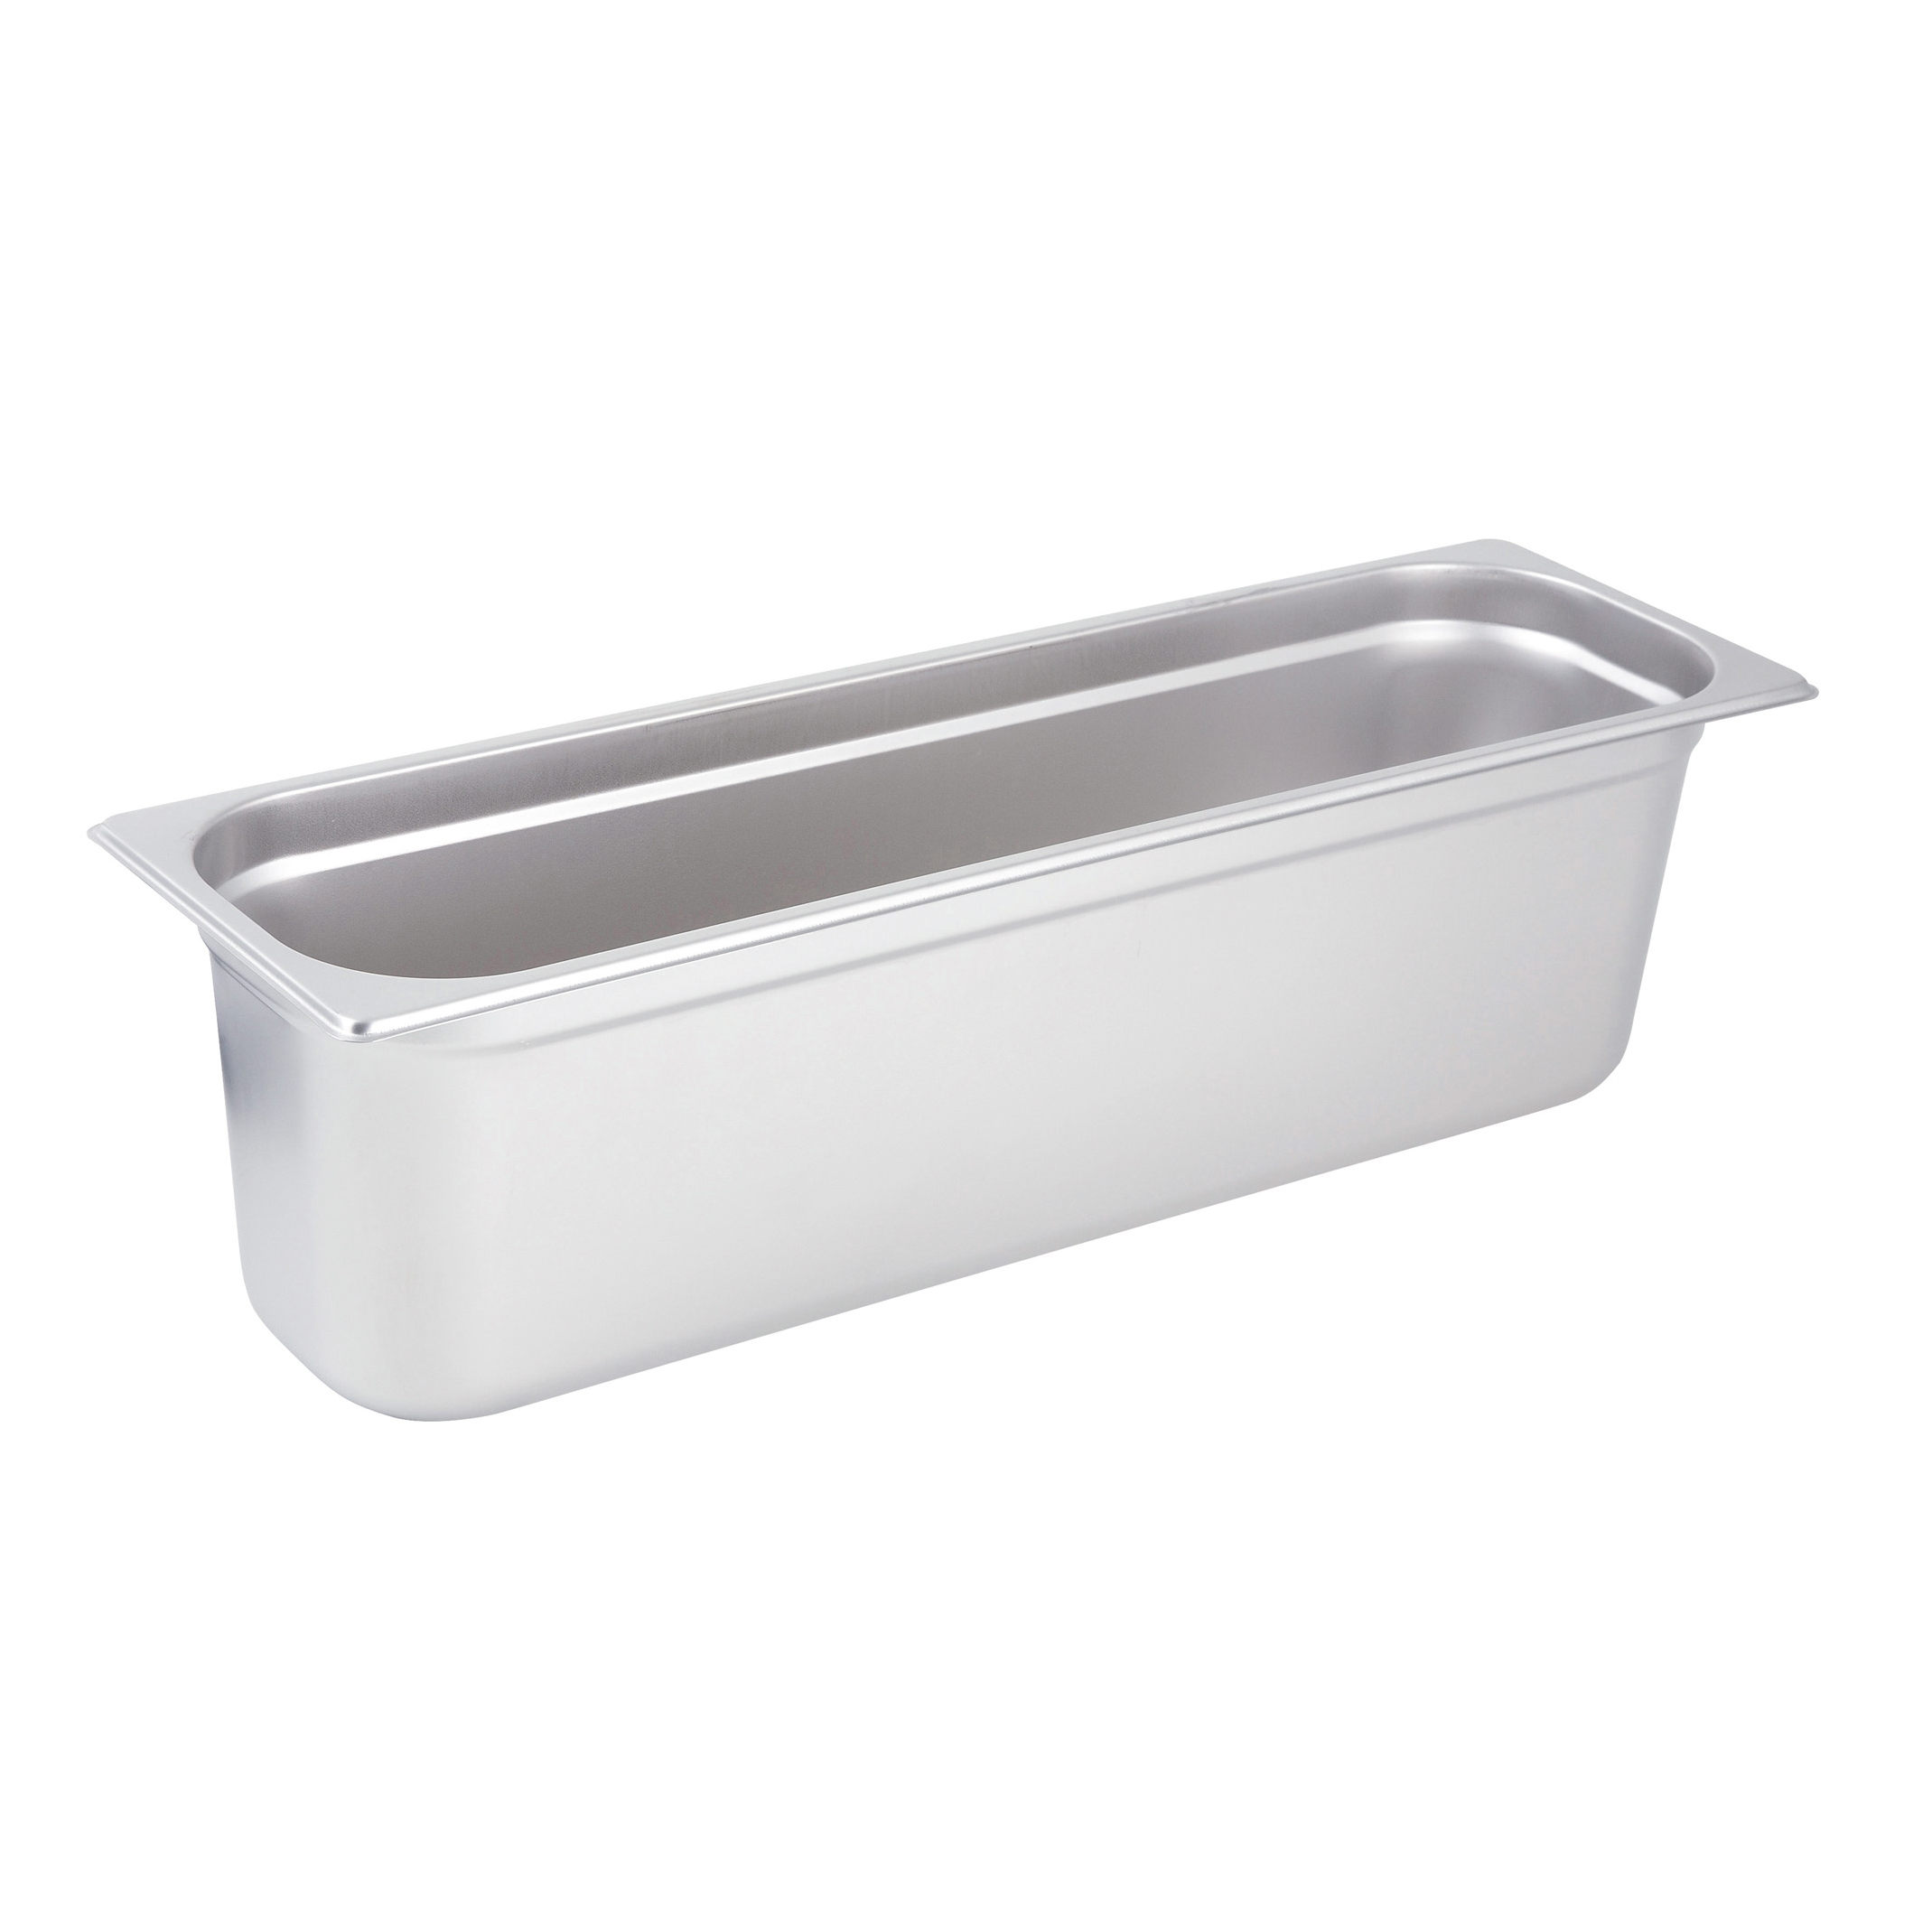 Winco SPJH-6HL steam table pan, stainless steel